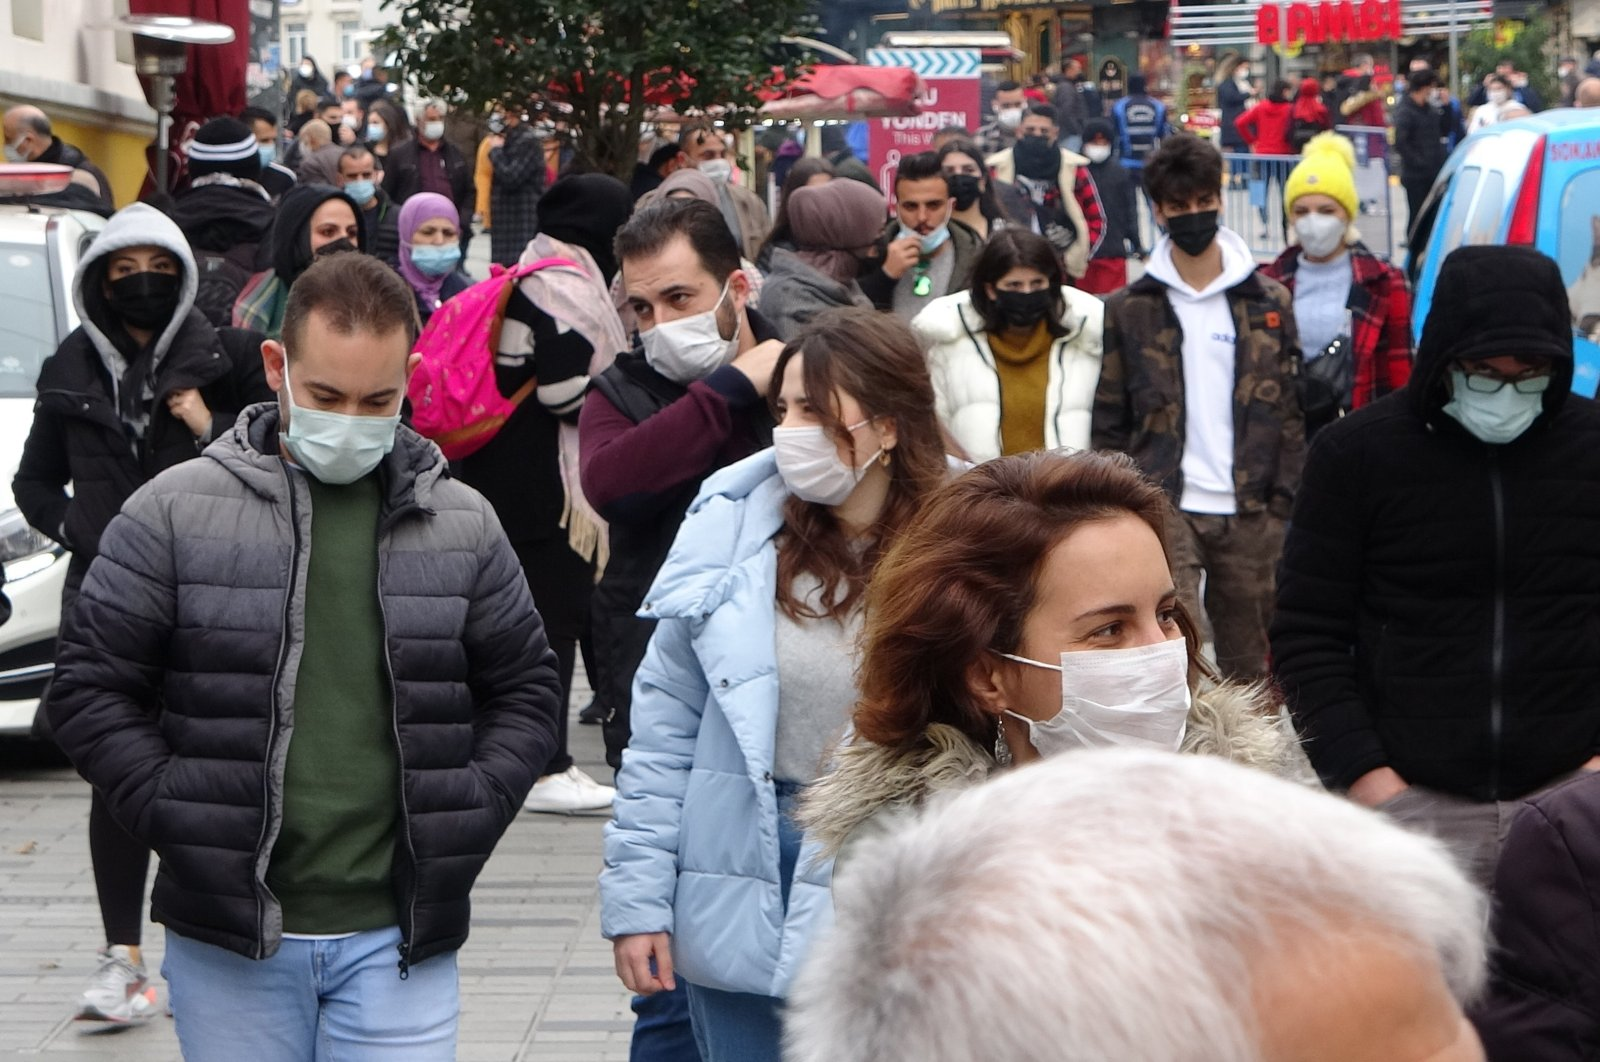 People with face masks walk on Istiklal Street near Taksim Square, in Istanbul, Turkey, Feb. 1, 2021. (IHA Photo)